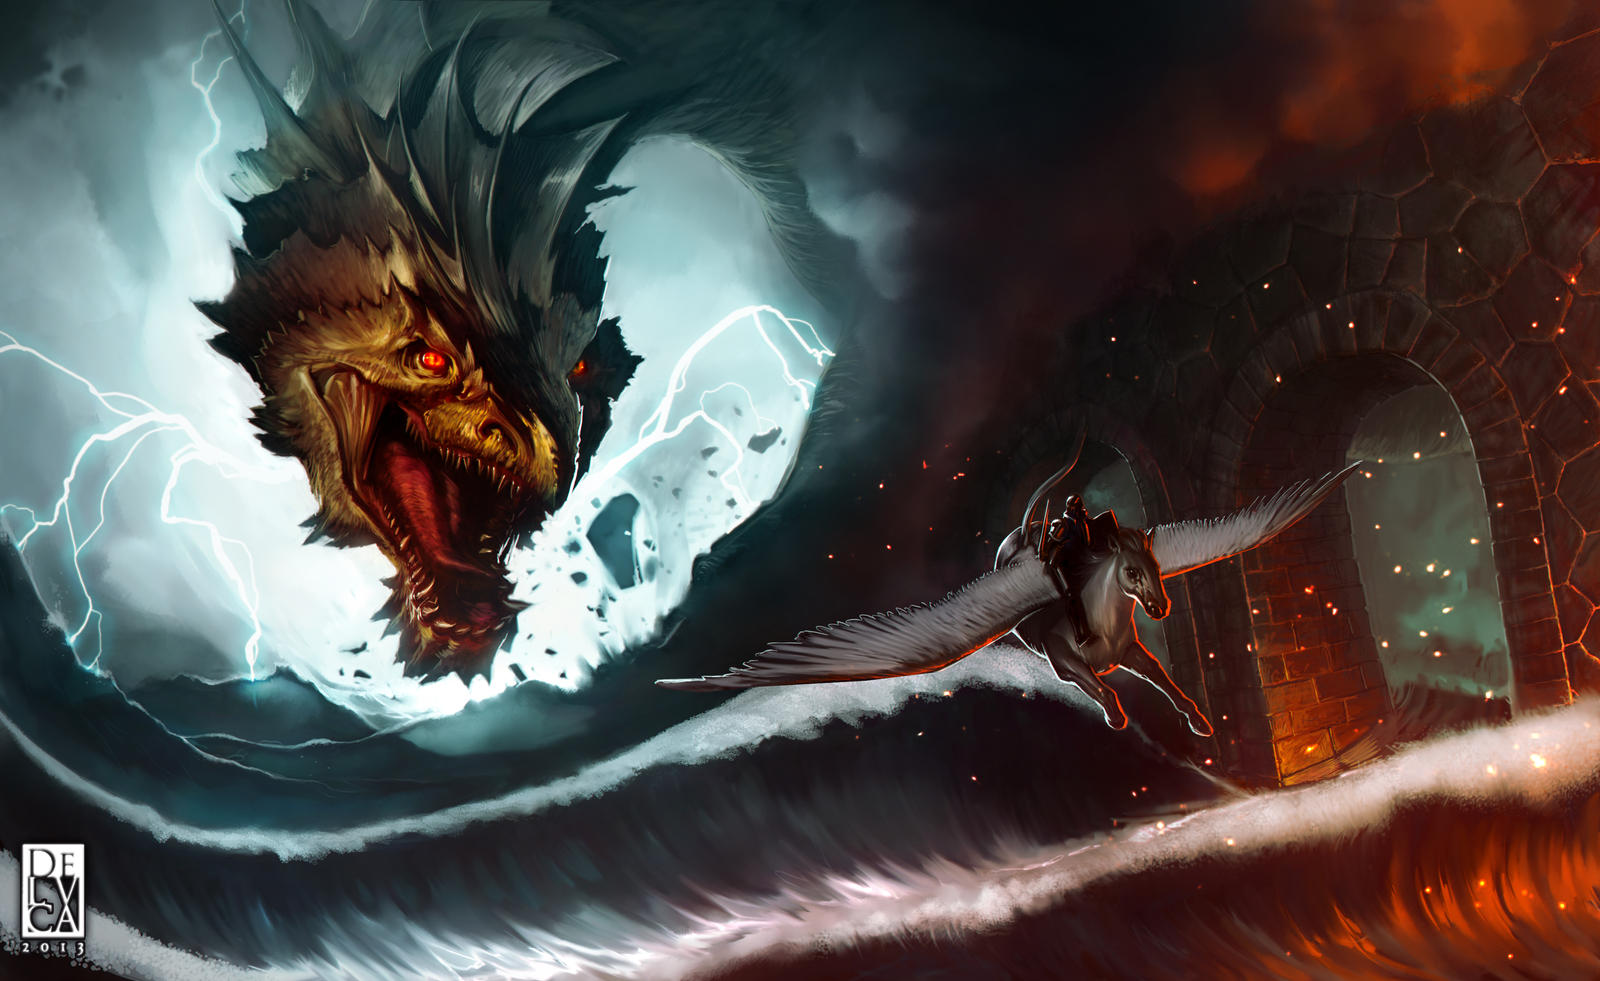 Escape from the Dragon by antoniodeluca